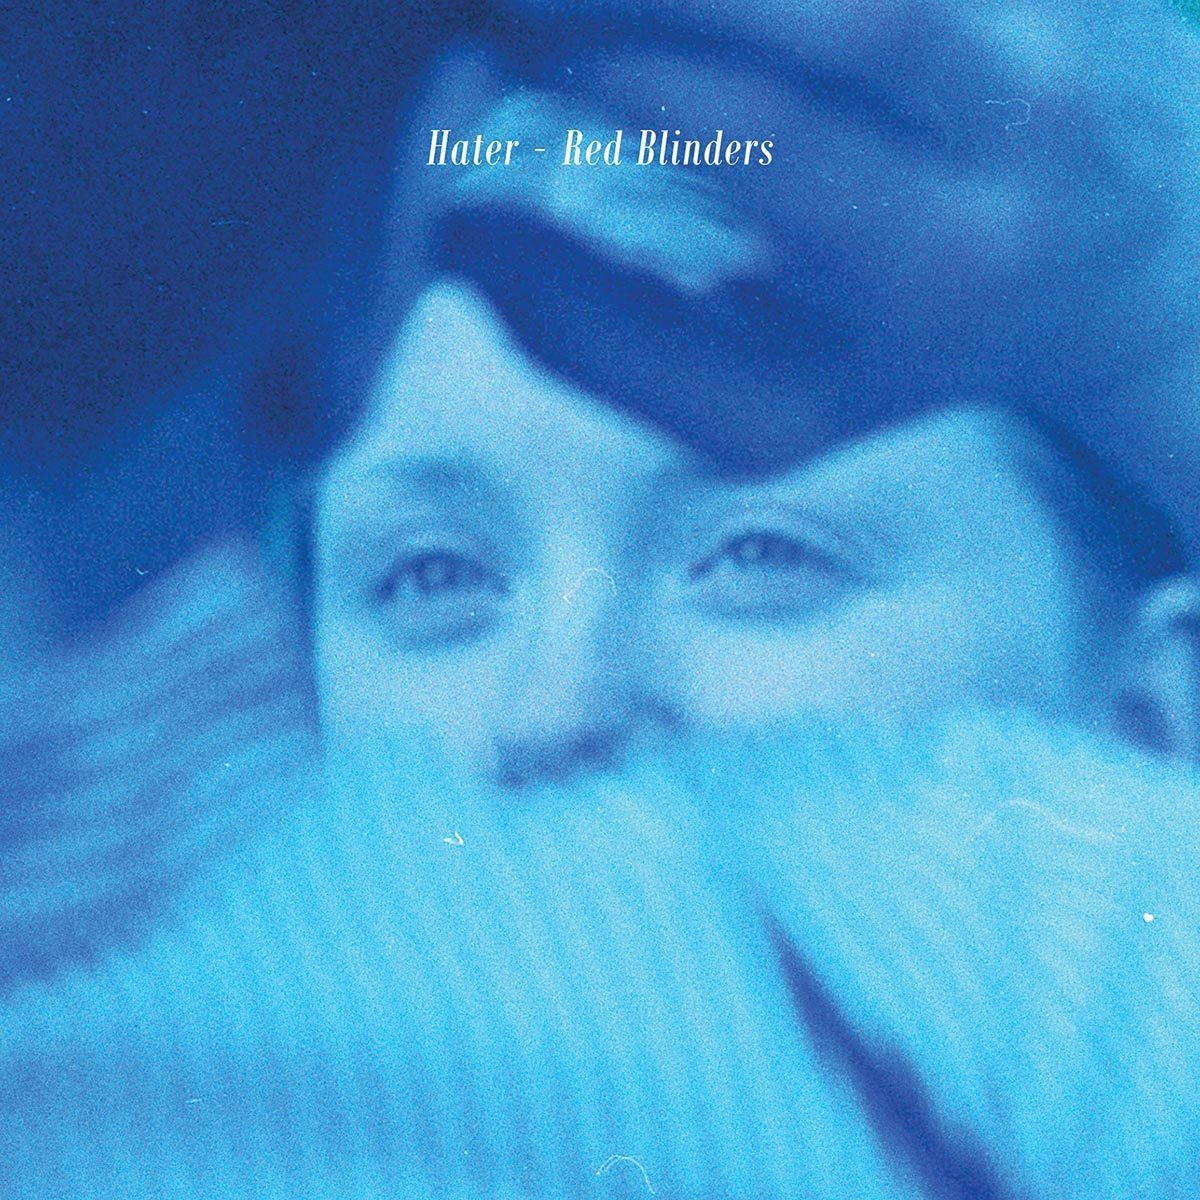 Hater - Red Blinders (CD)